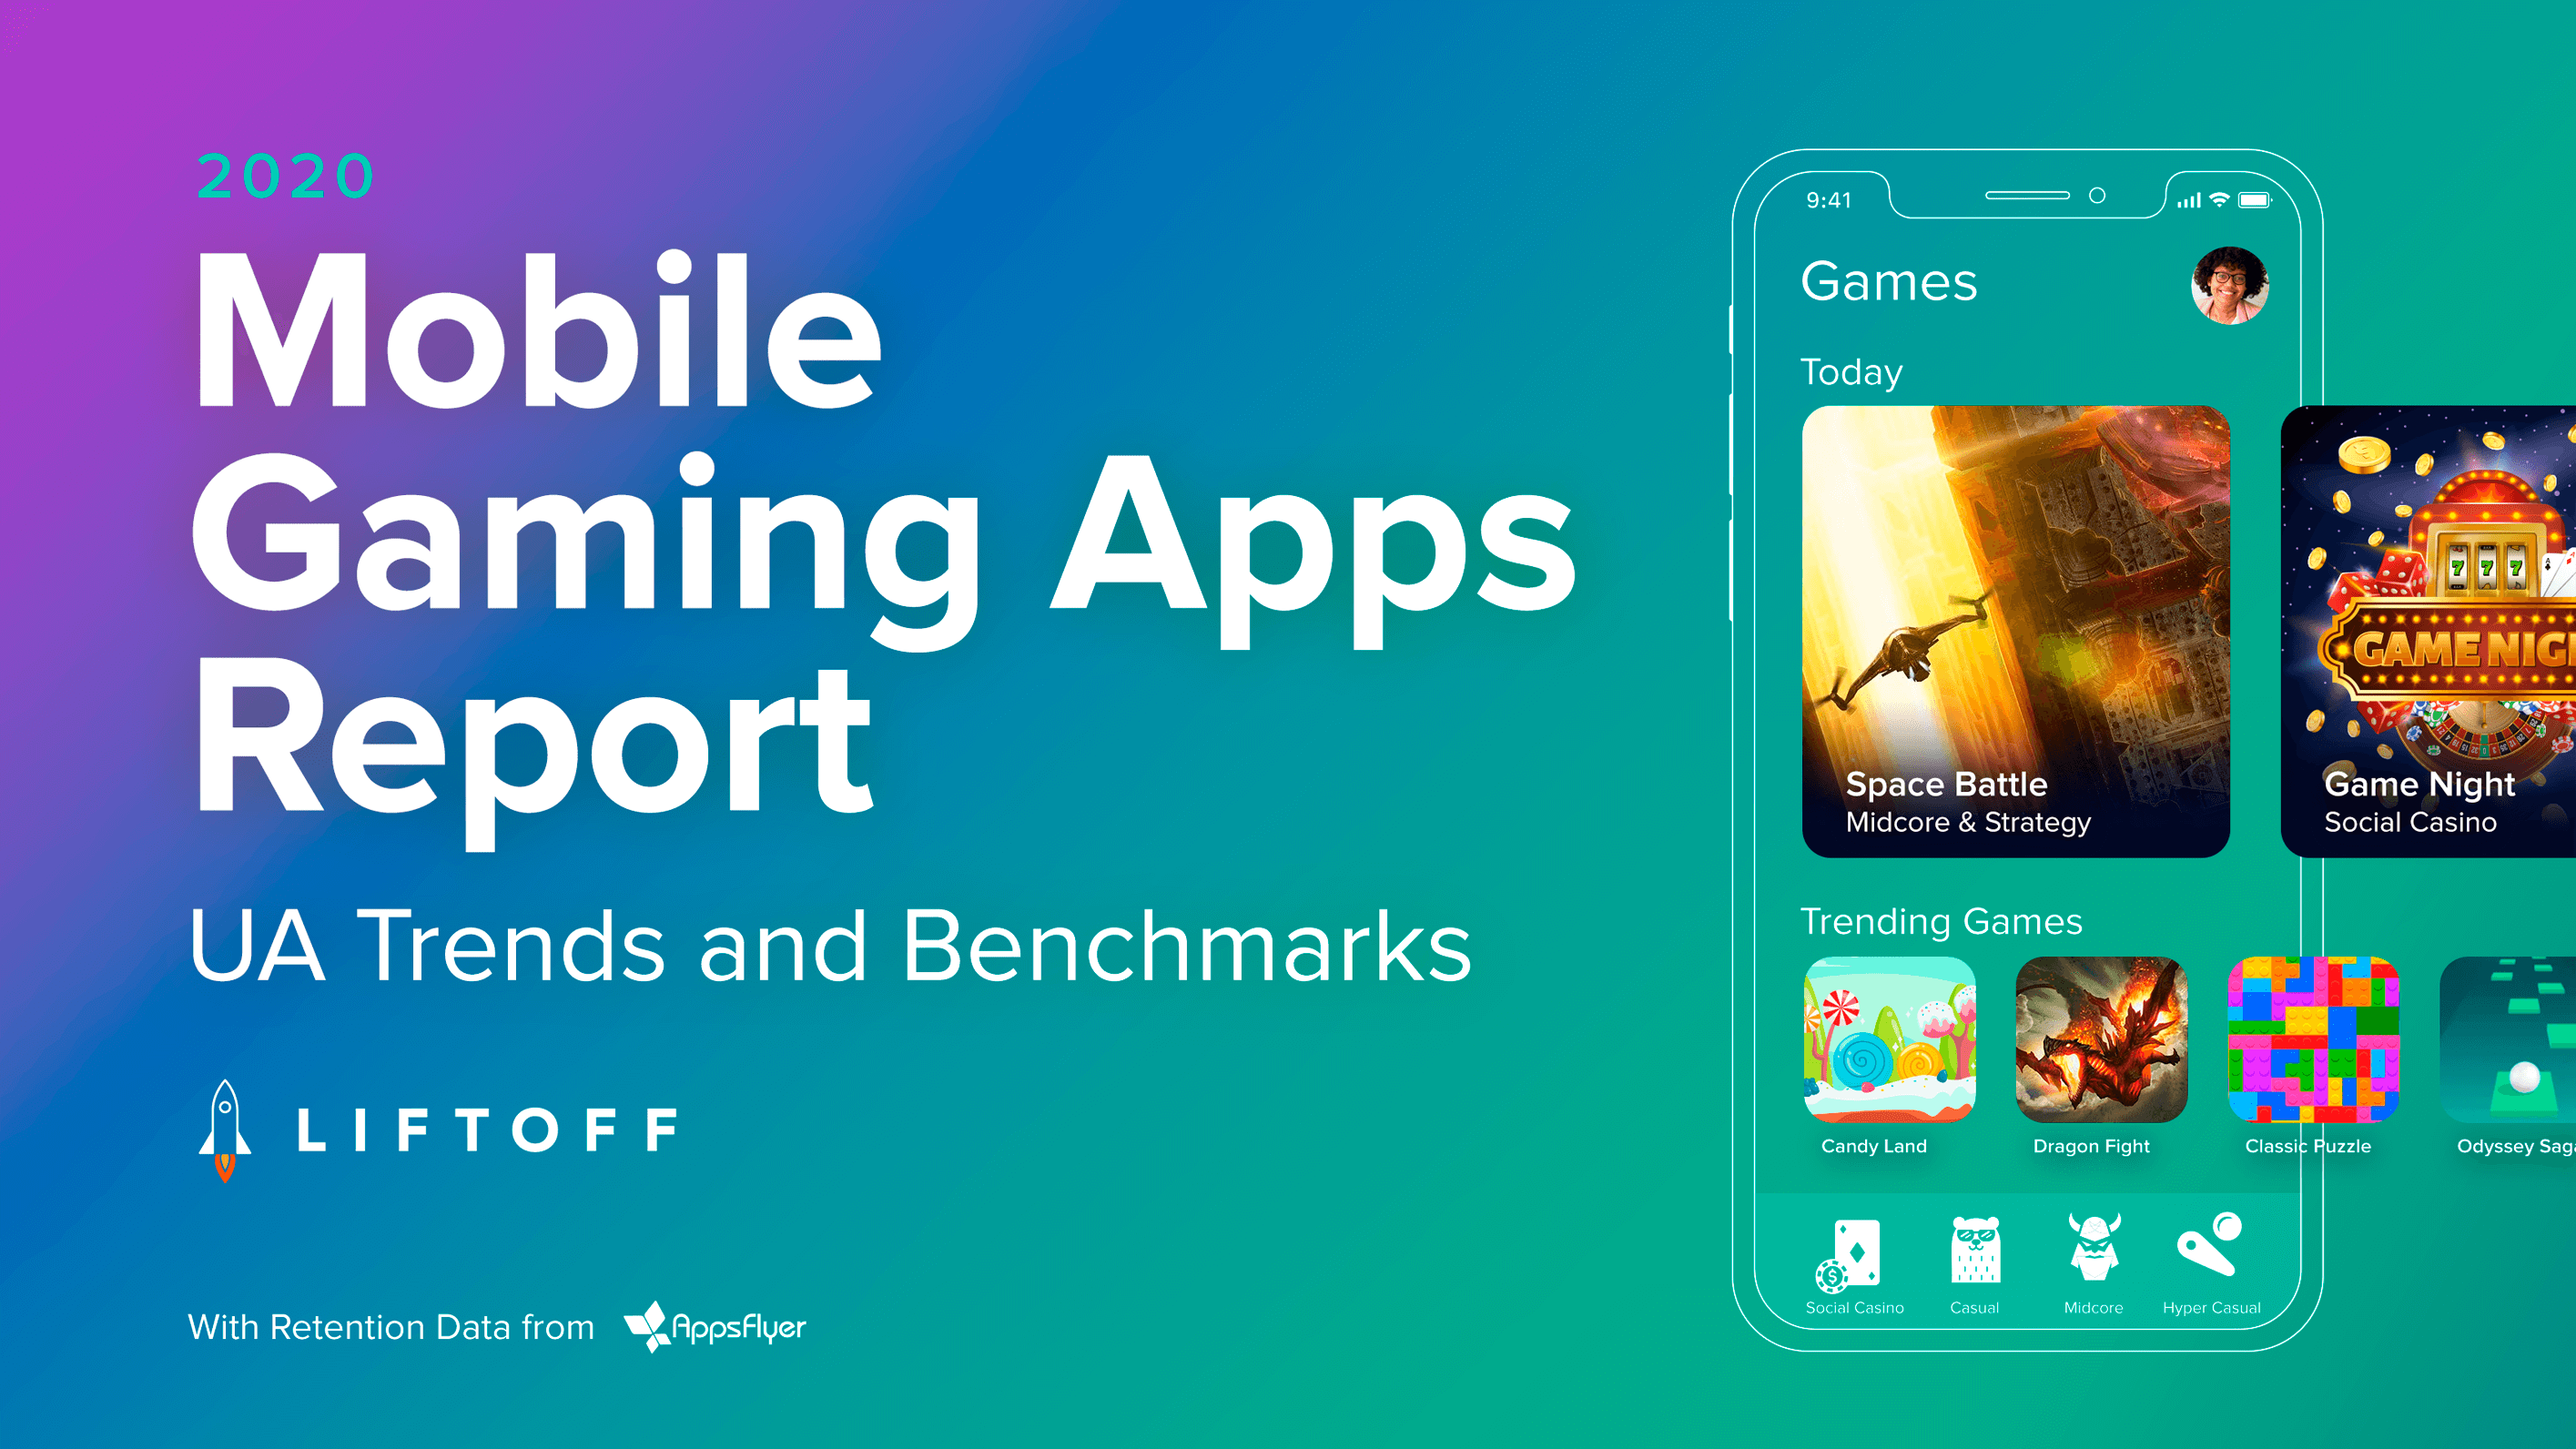 NEW! 2020 Mobile Gaming Apps Report